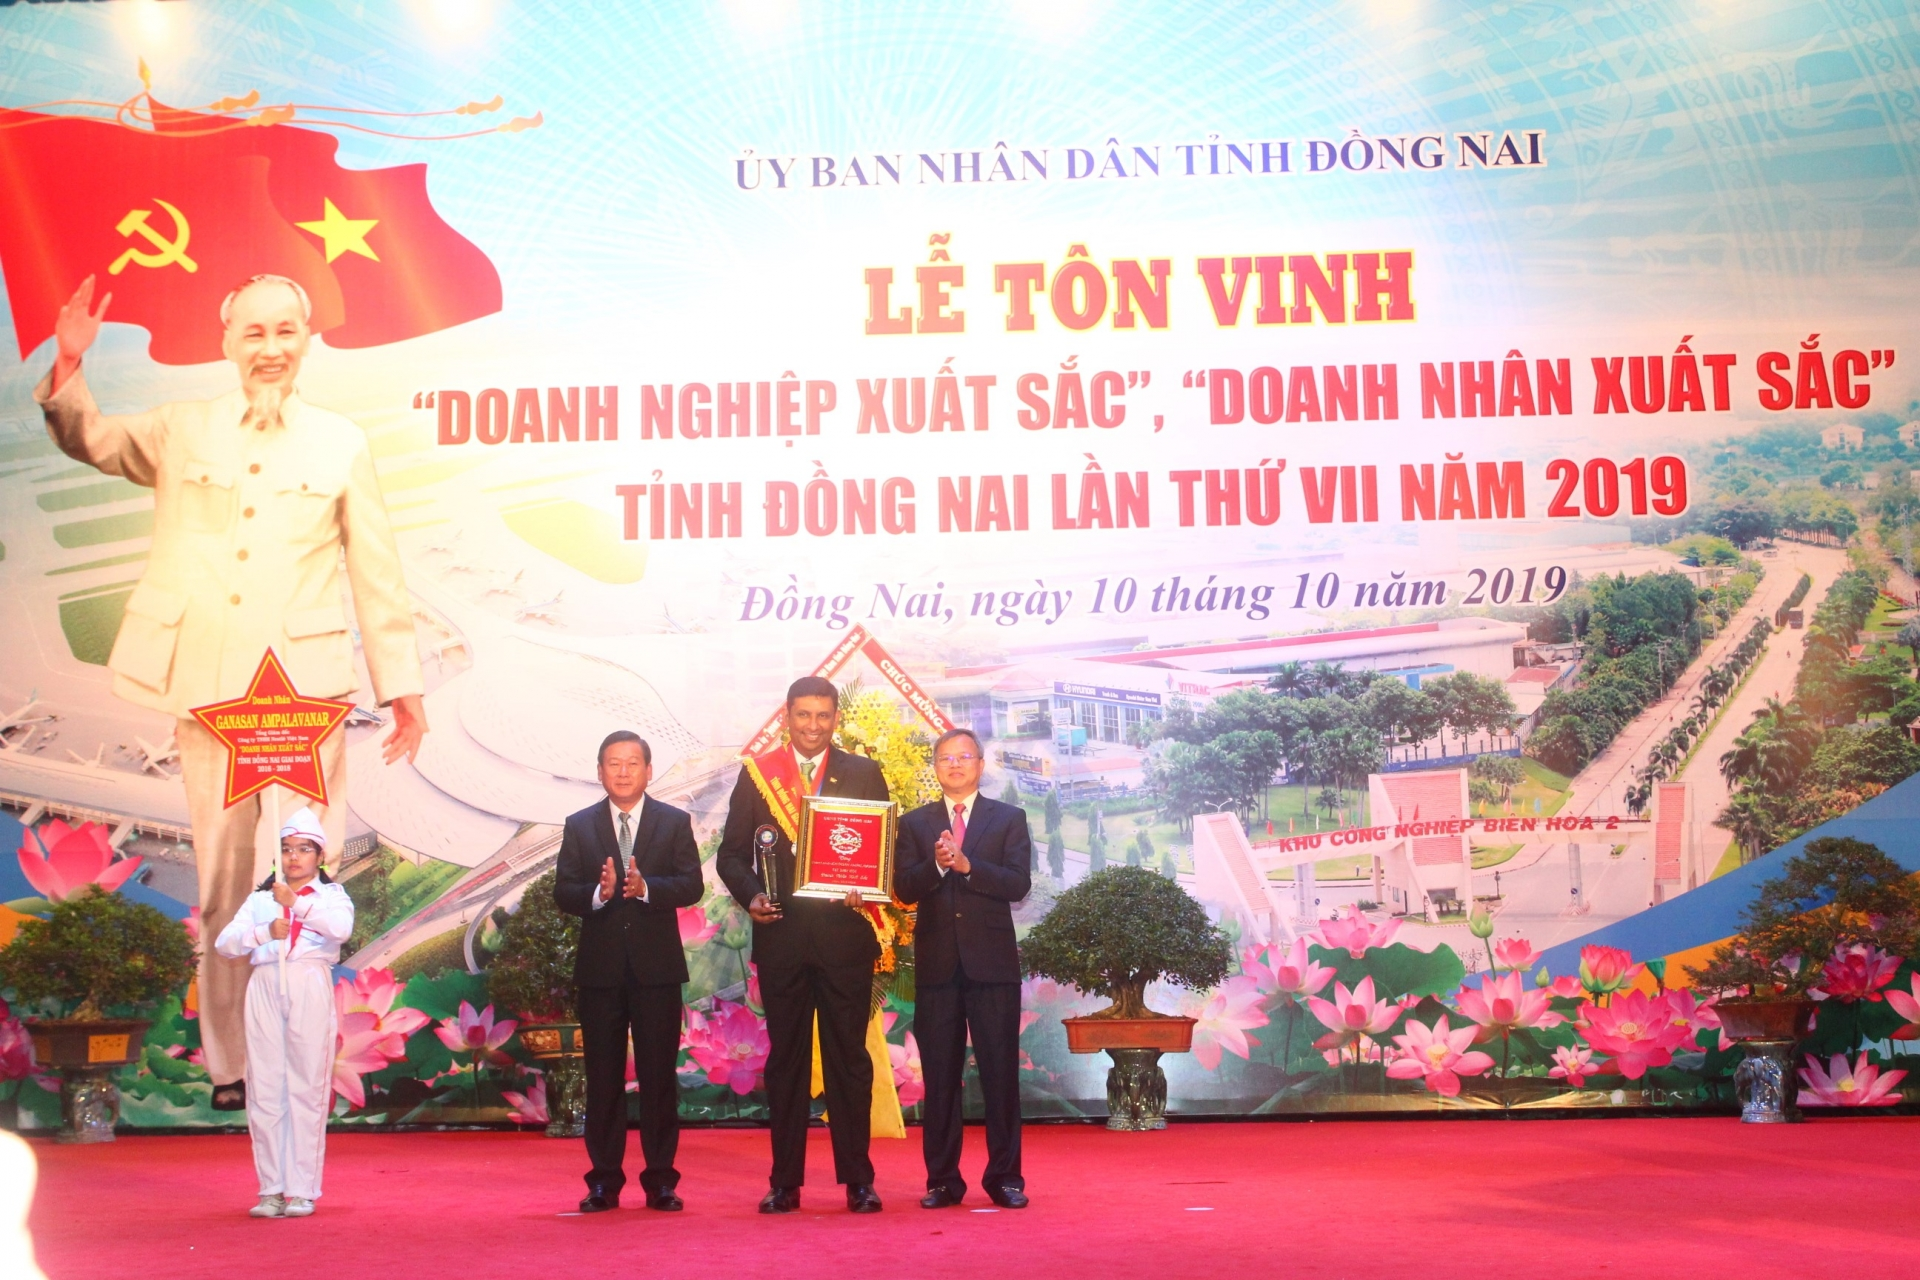 Nestlé honoured as Excellent Business by Dong Nai province